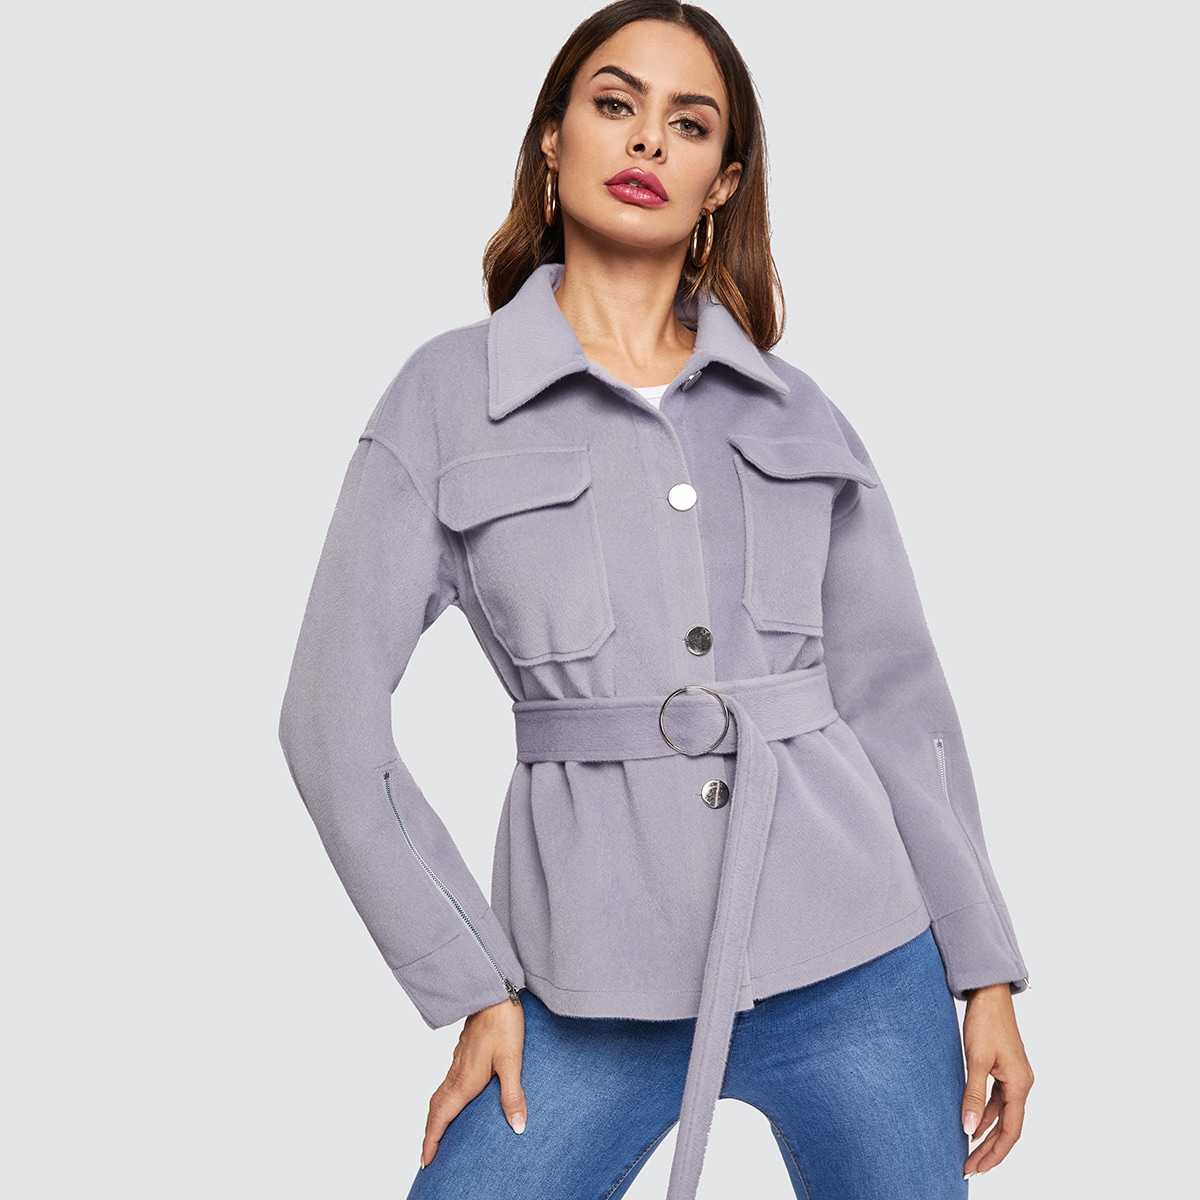 Button Up Flap Pocket Utility Coat in Purple by ROMWE on GOOFASH